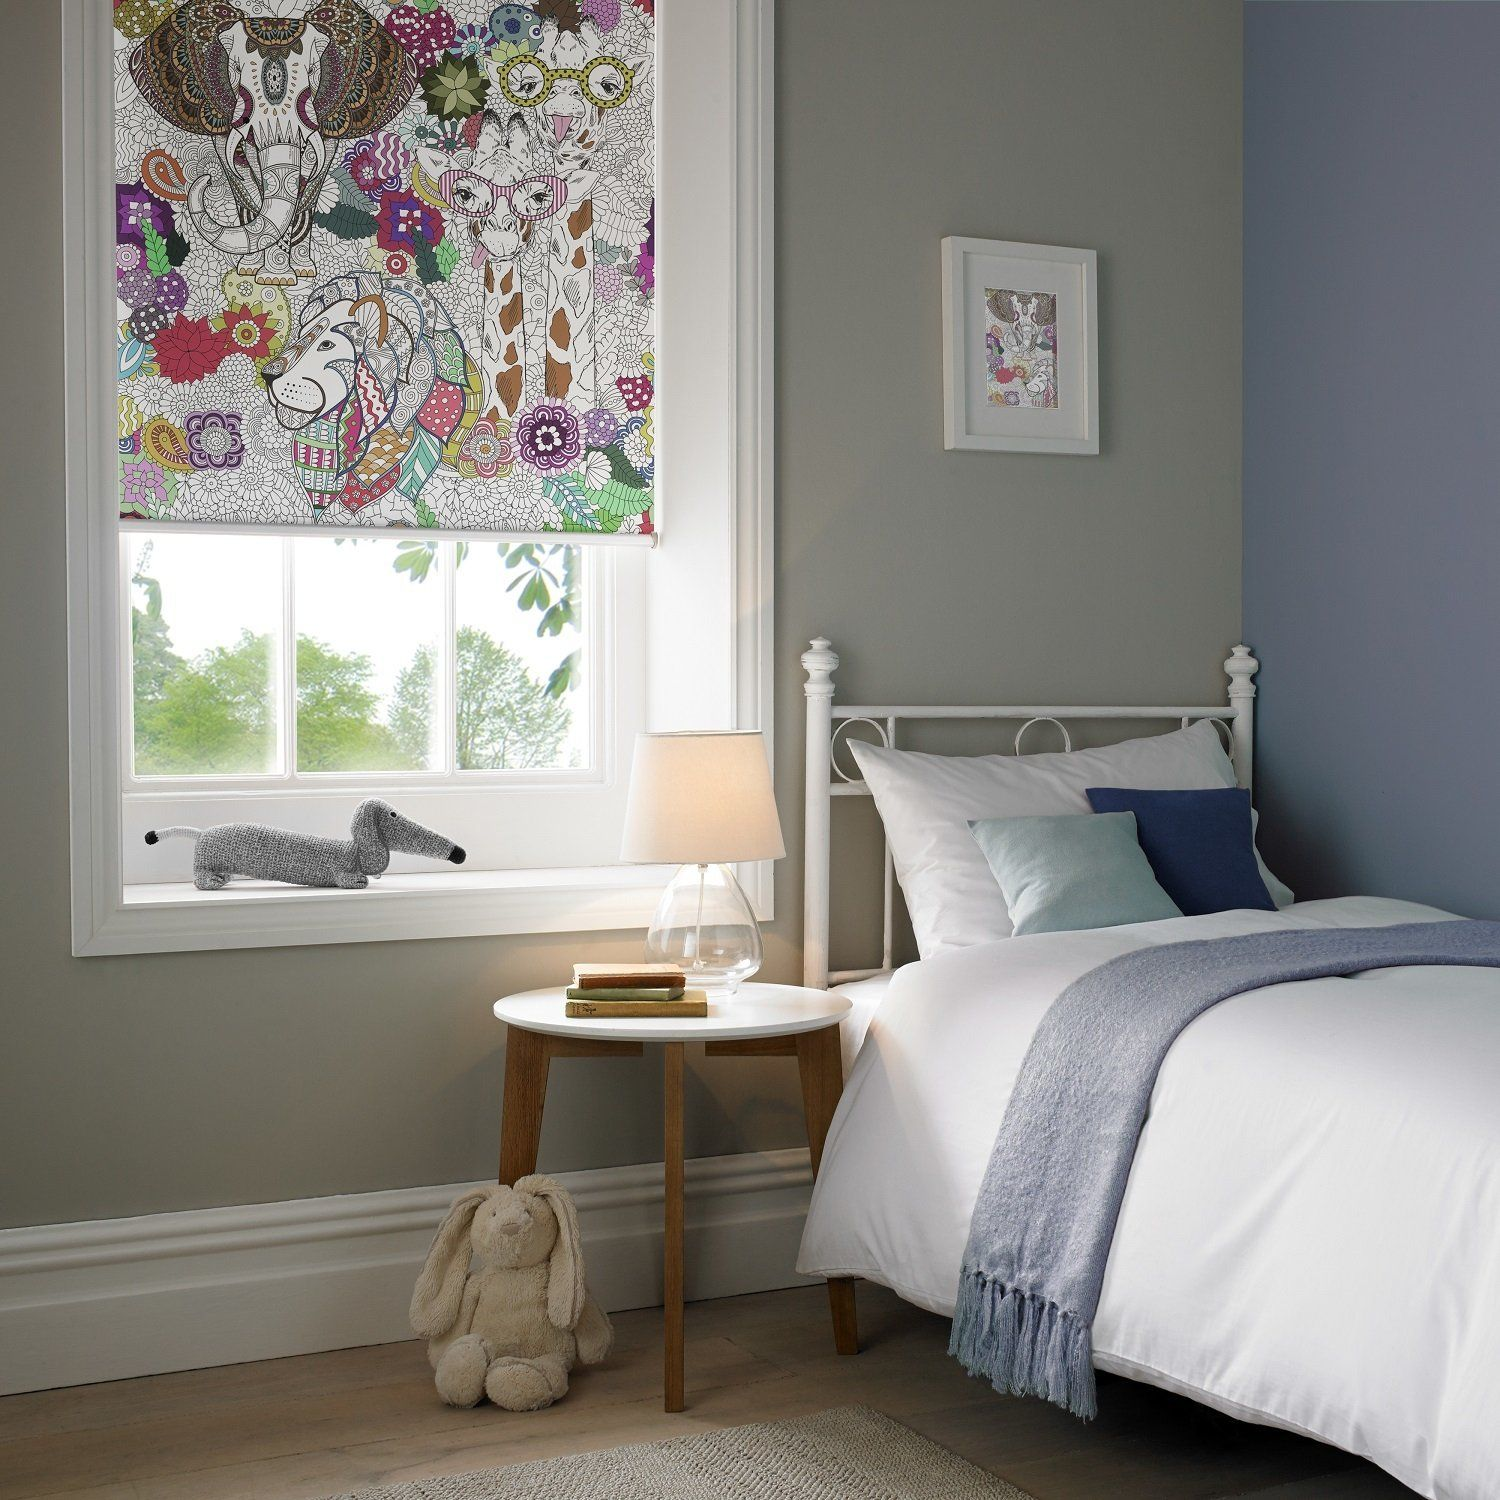 Fun Blinds Like This Fantasy Crayon Blackout Blind From Style